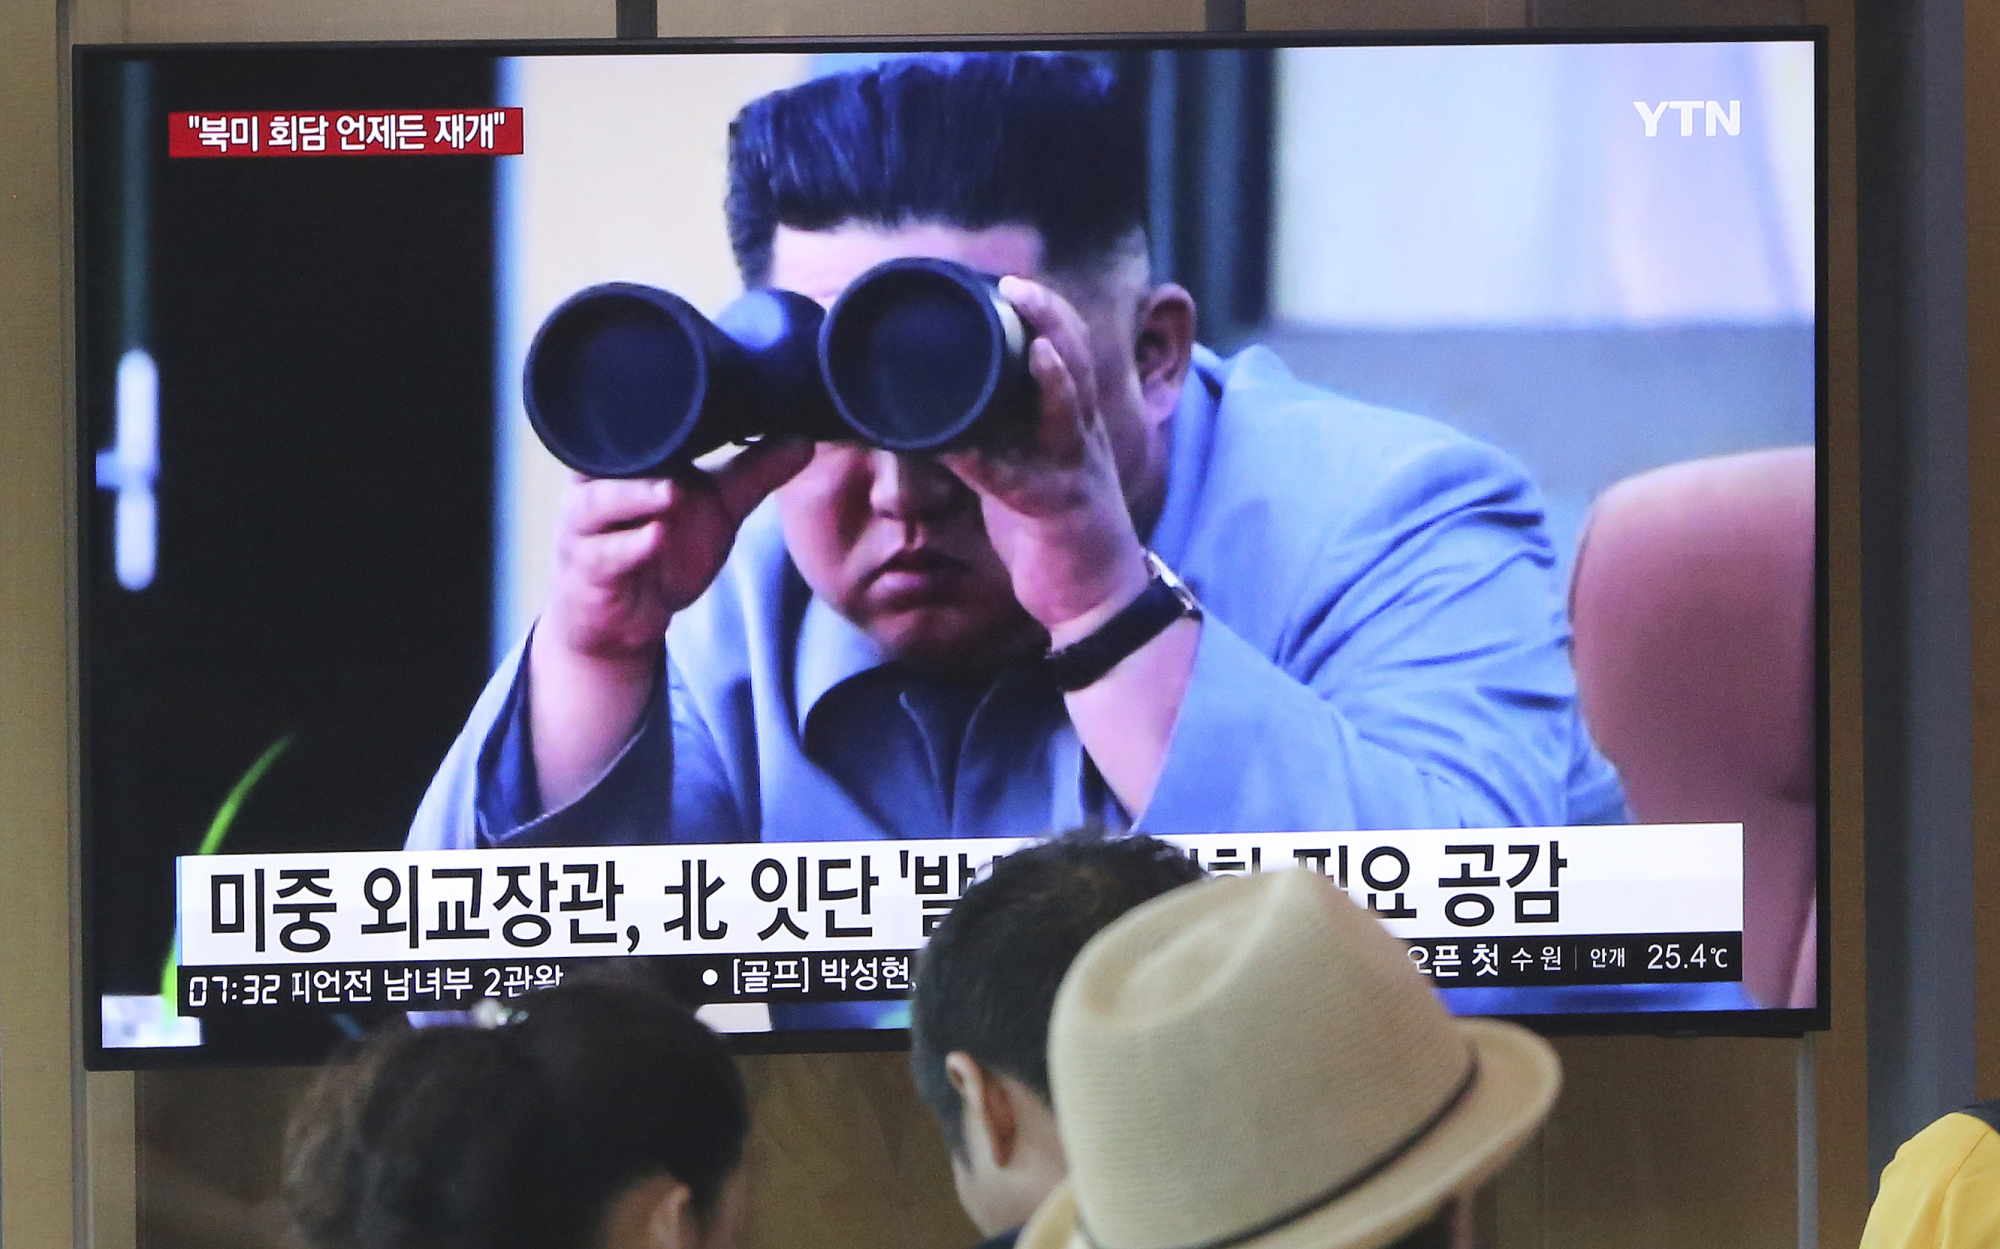 People look at a TV screen at the main railway station in Seoul on Friday during which a news program is broadcasting file footage of North Korean leader Kim Jong Un. | AP